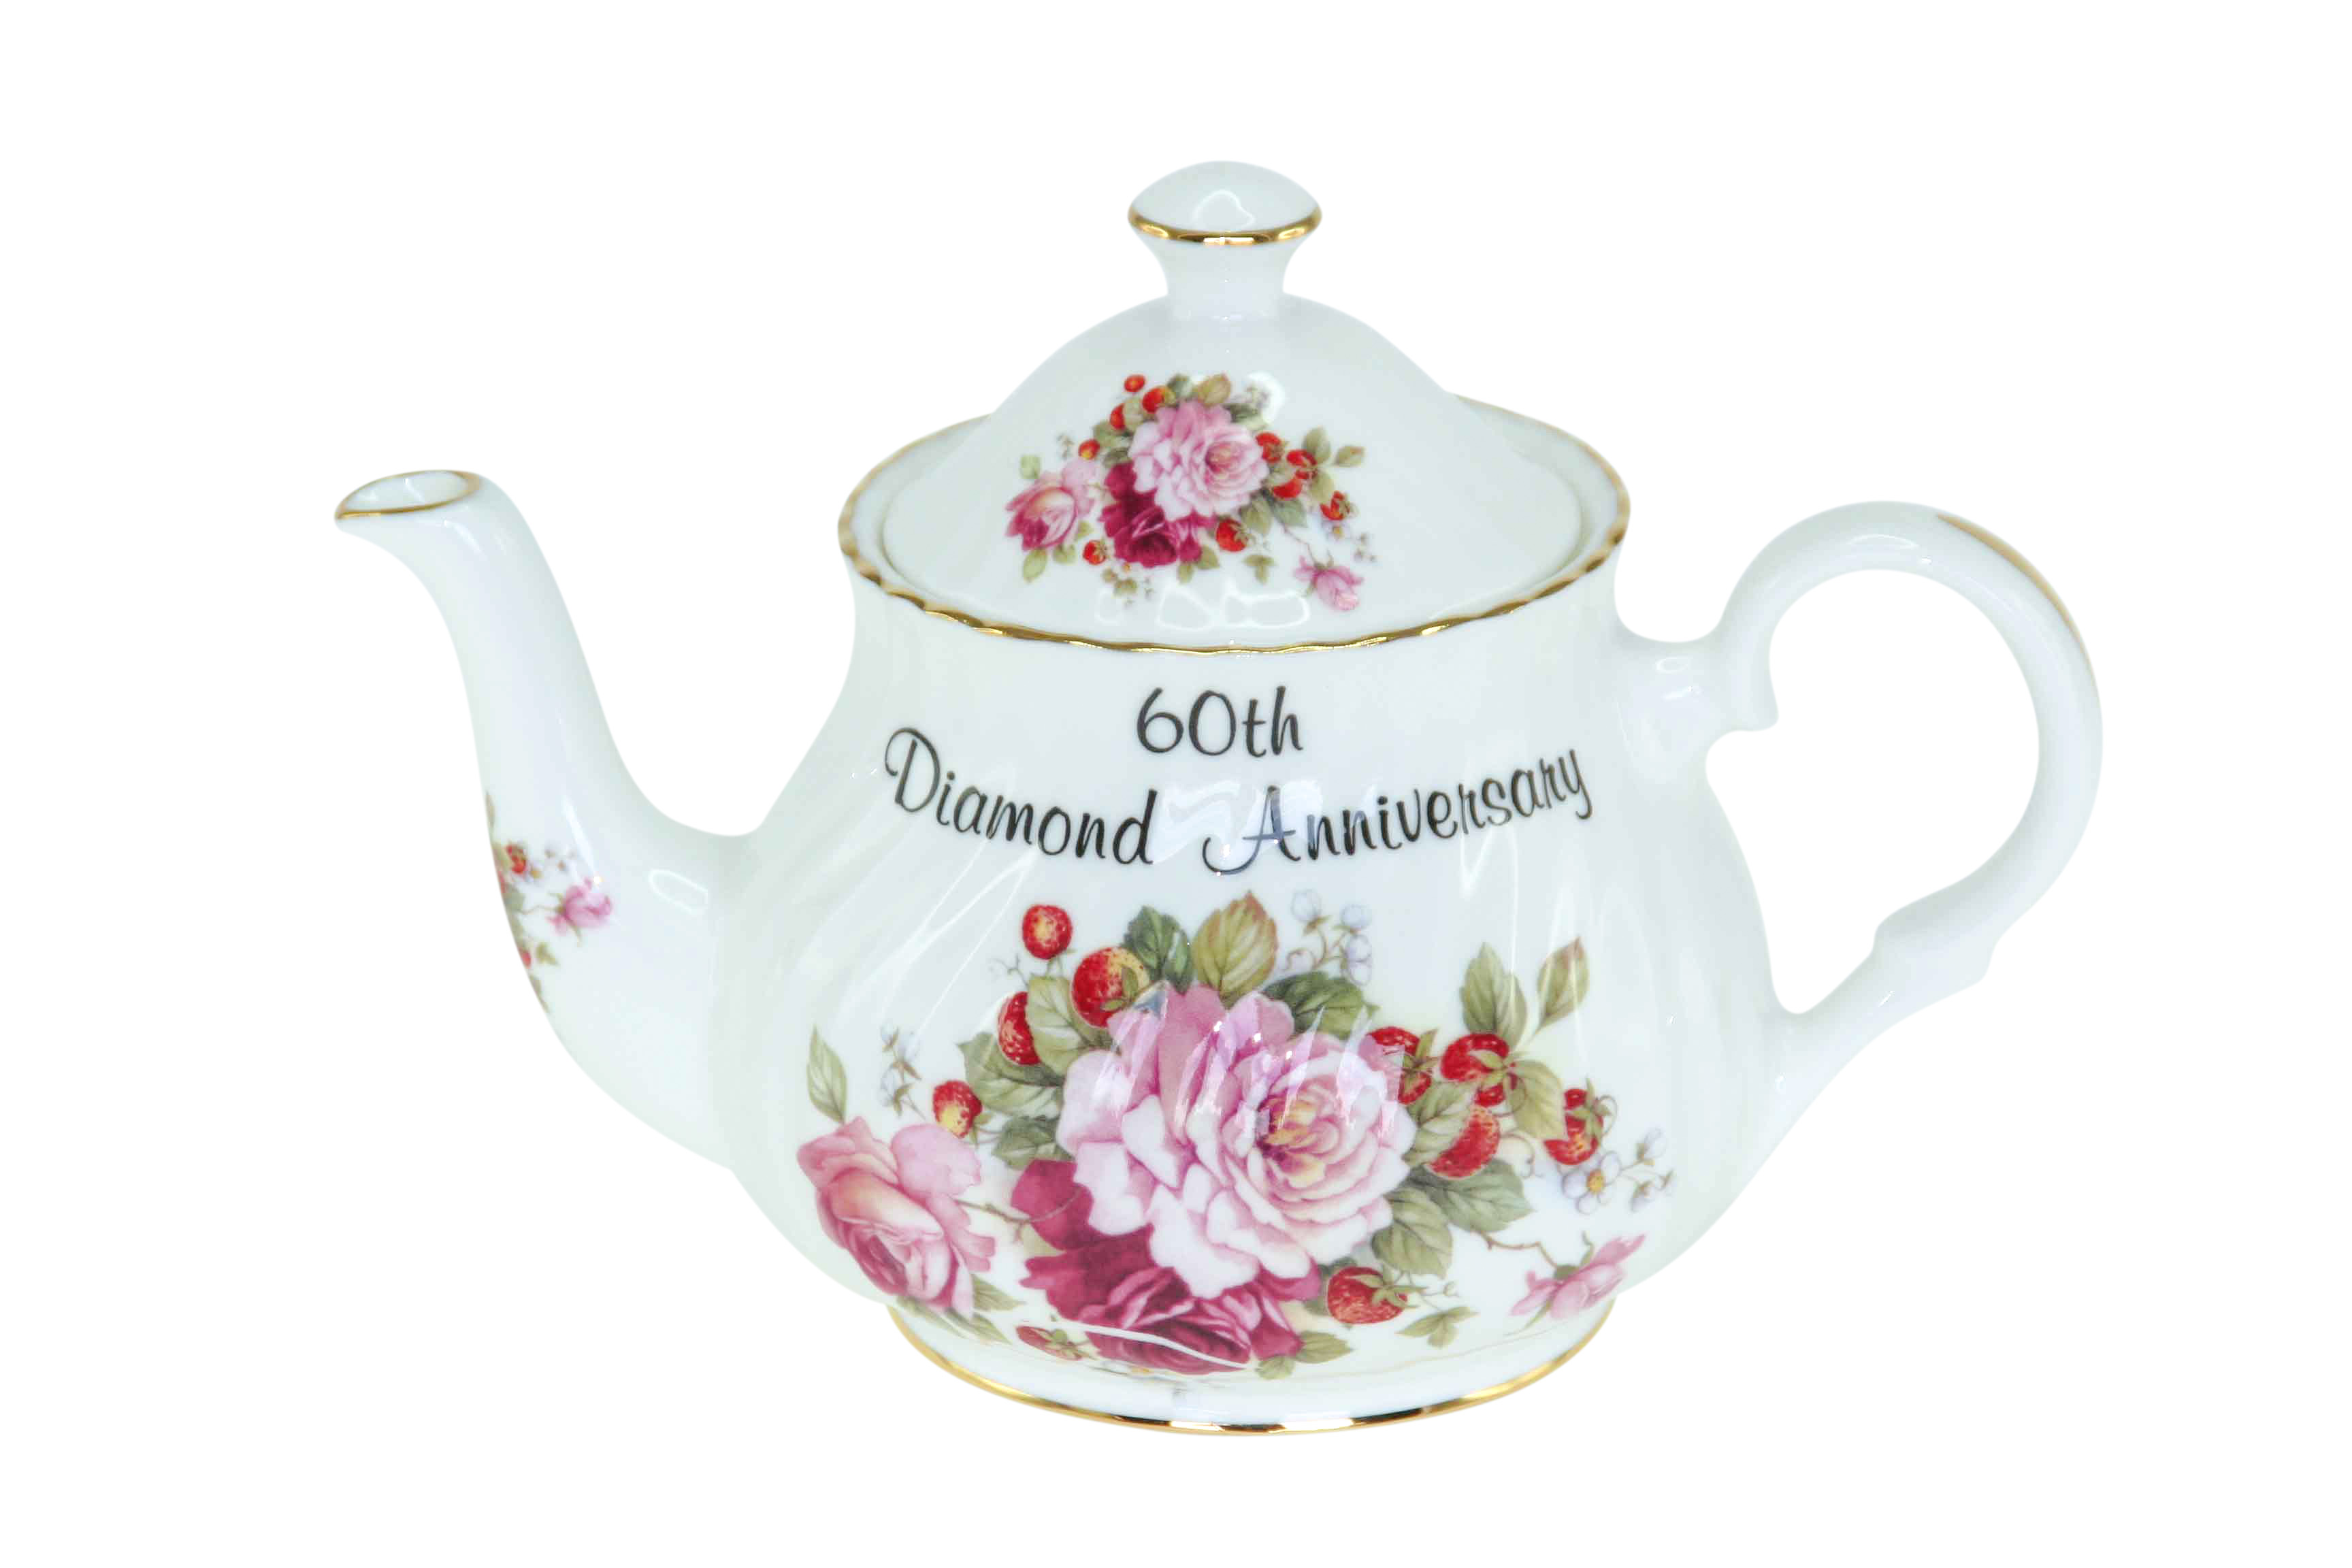 60th Diamond Anniversary 2cup Teapot